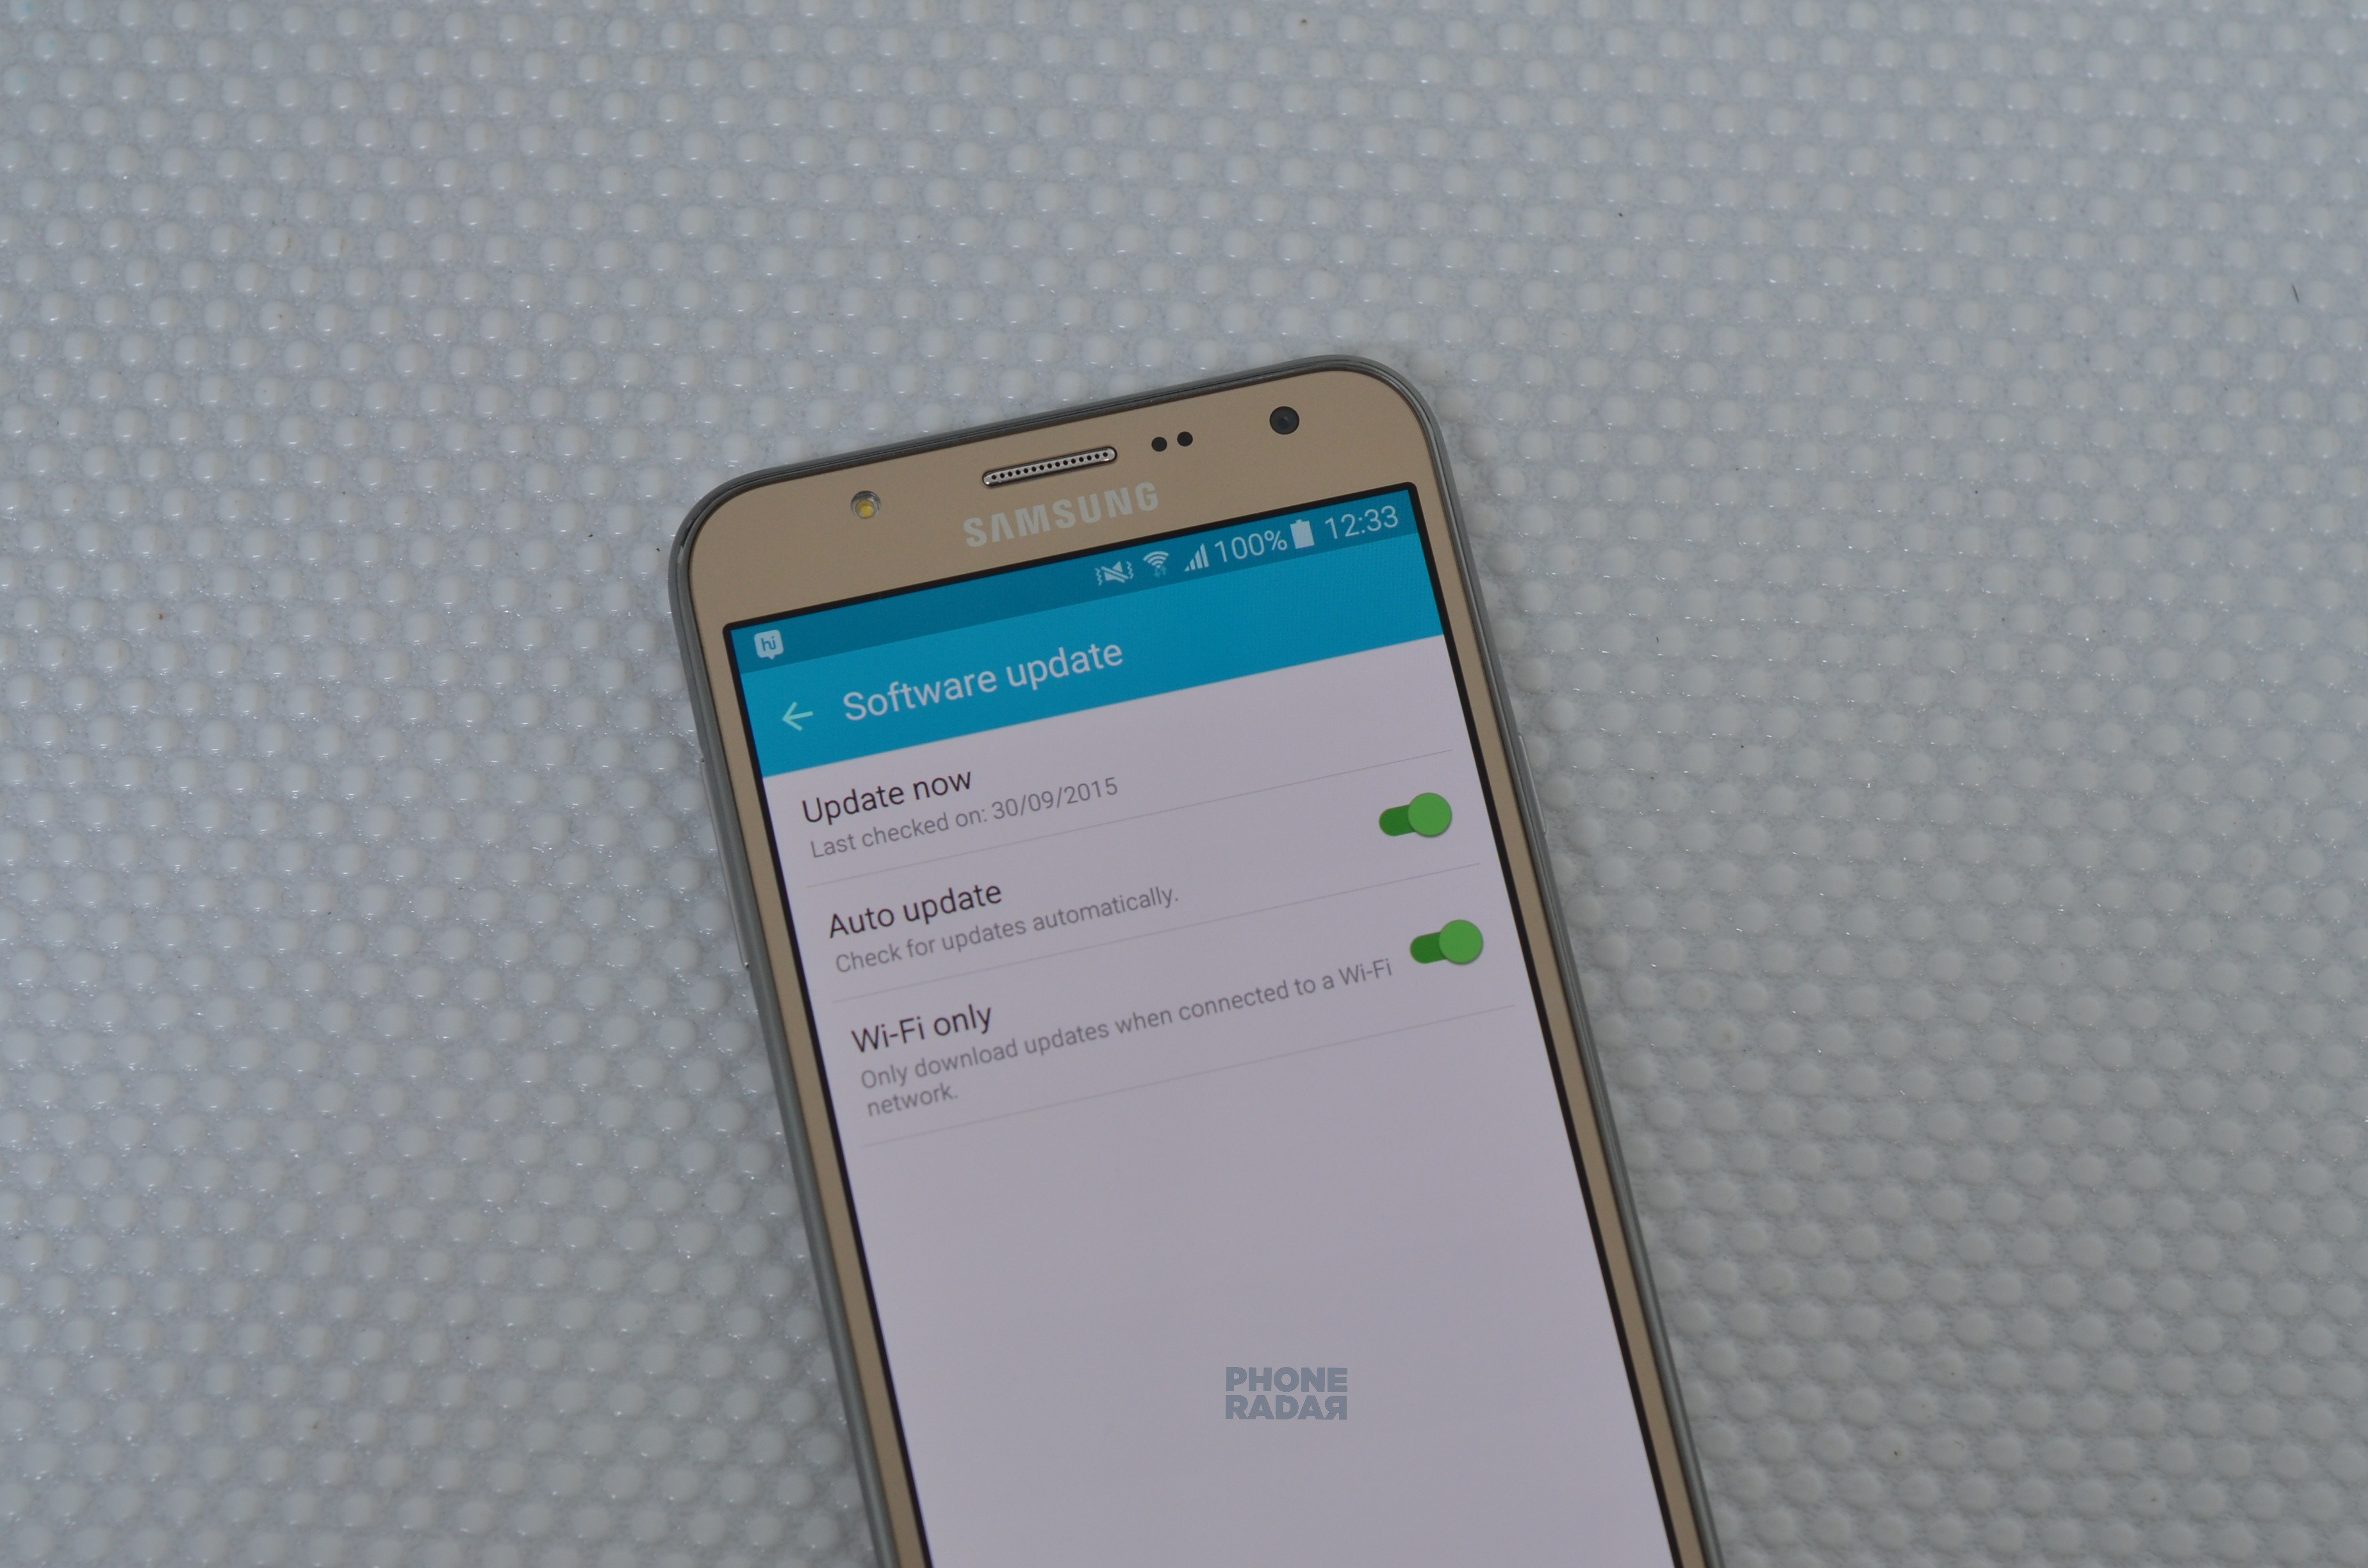 How to fix No Service / No Signal issues on Samsung Galaxy